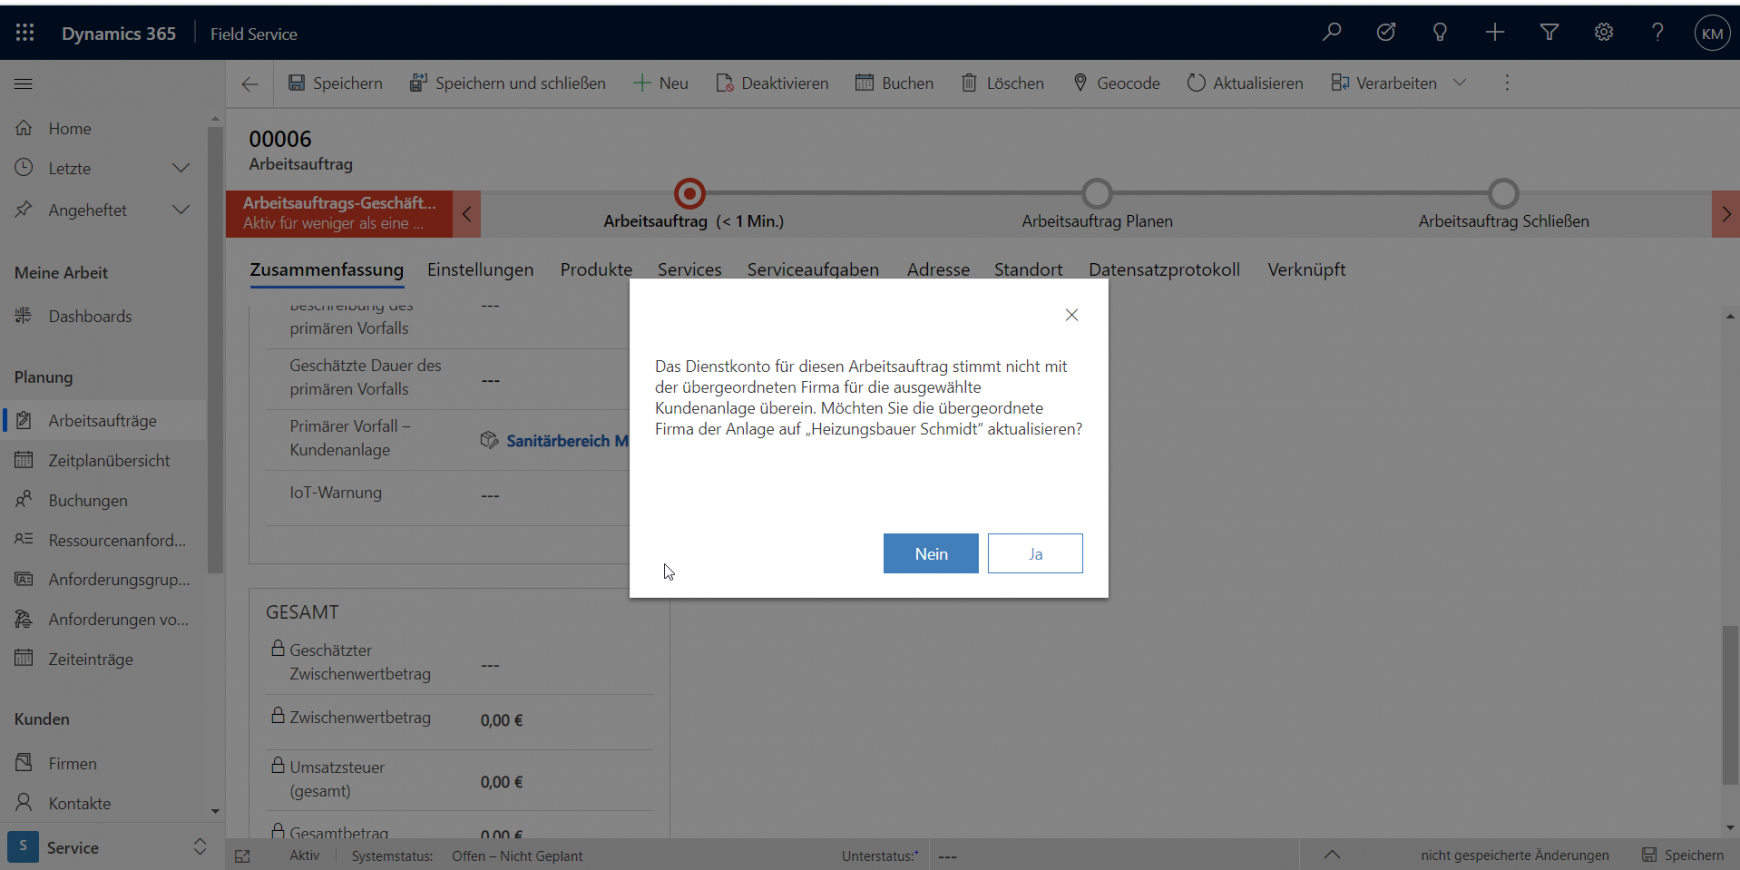 audius Field Service Blog | Dynamics 365 Herbst-Update – Wave 2 2020